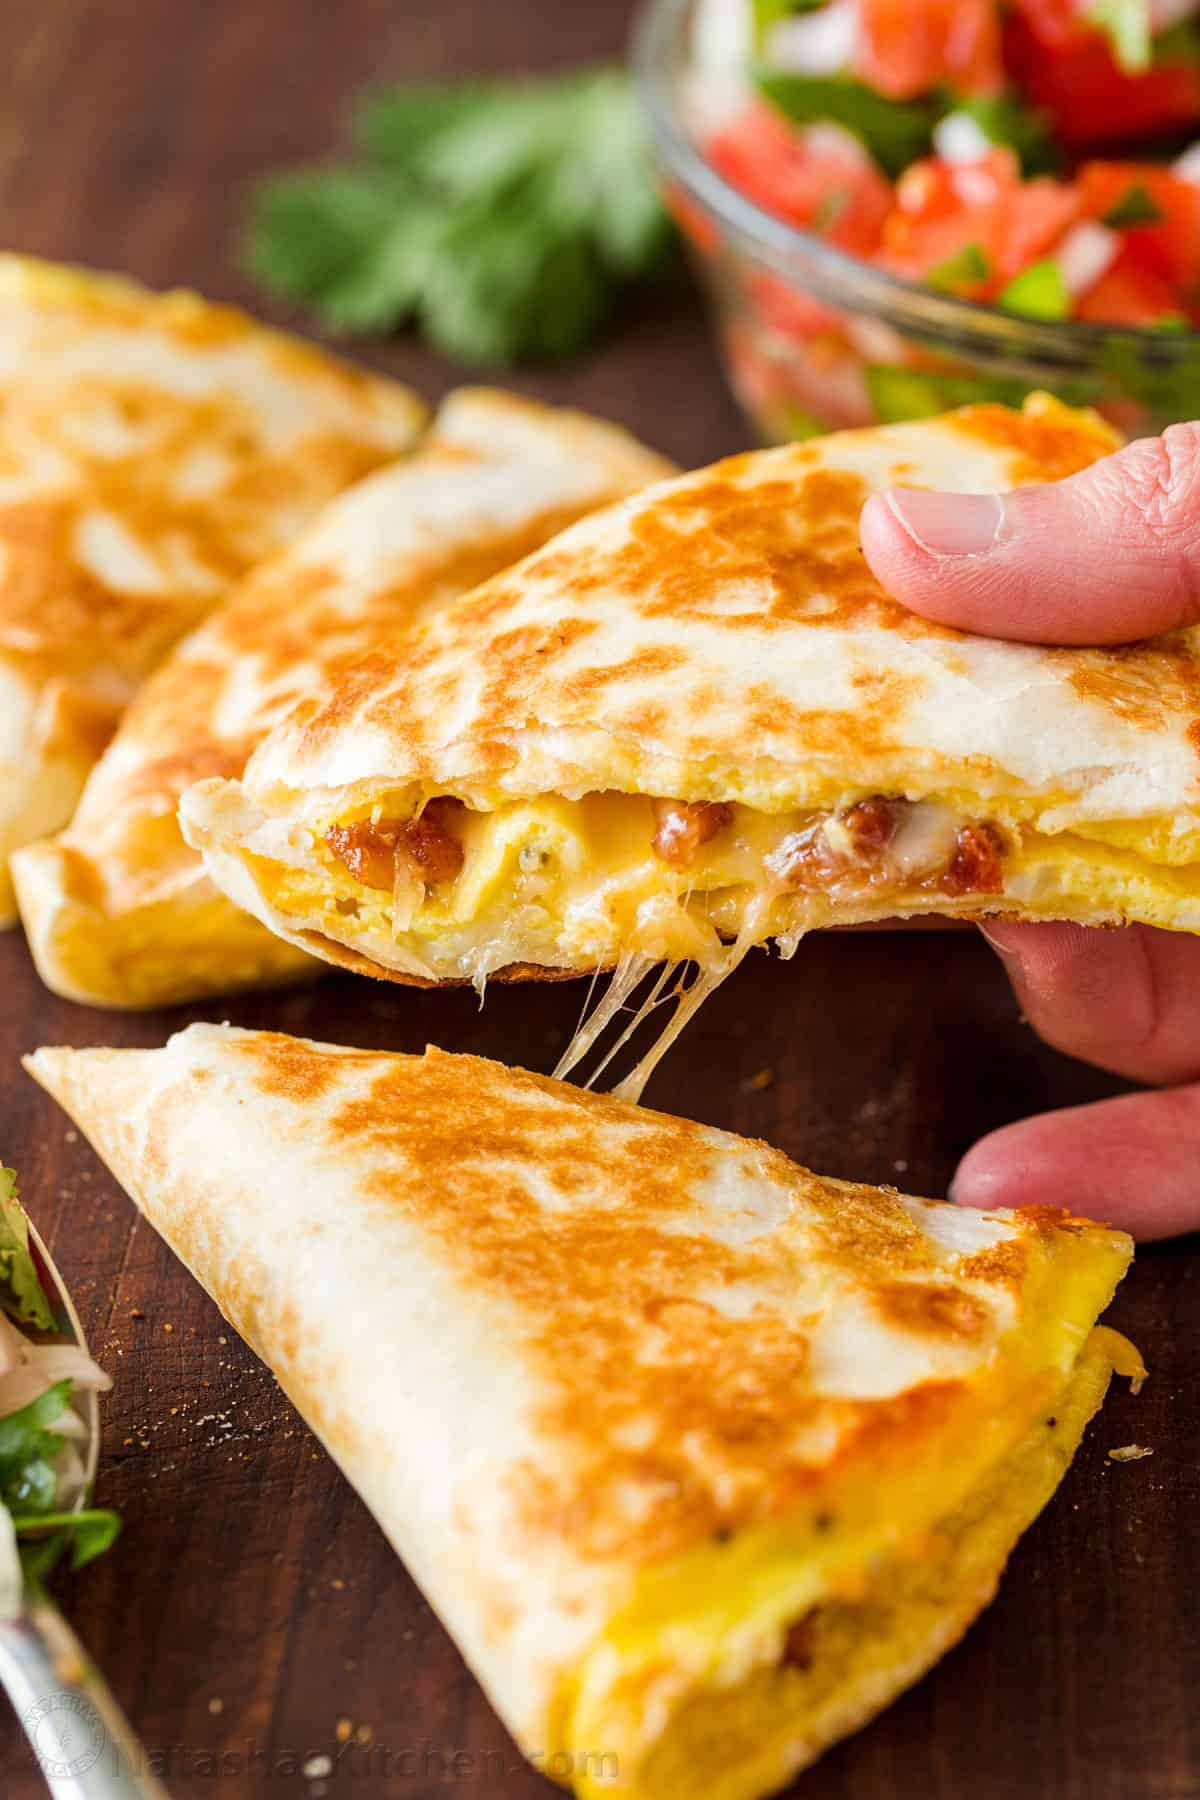 Breakfast Quesadillas 3 Easy Ways Video Natashaskitchen Com